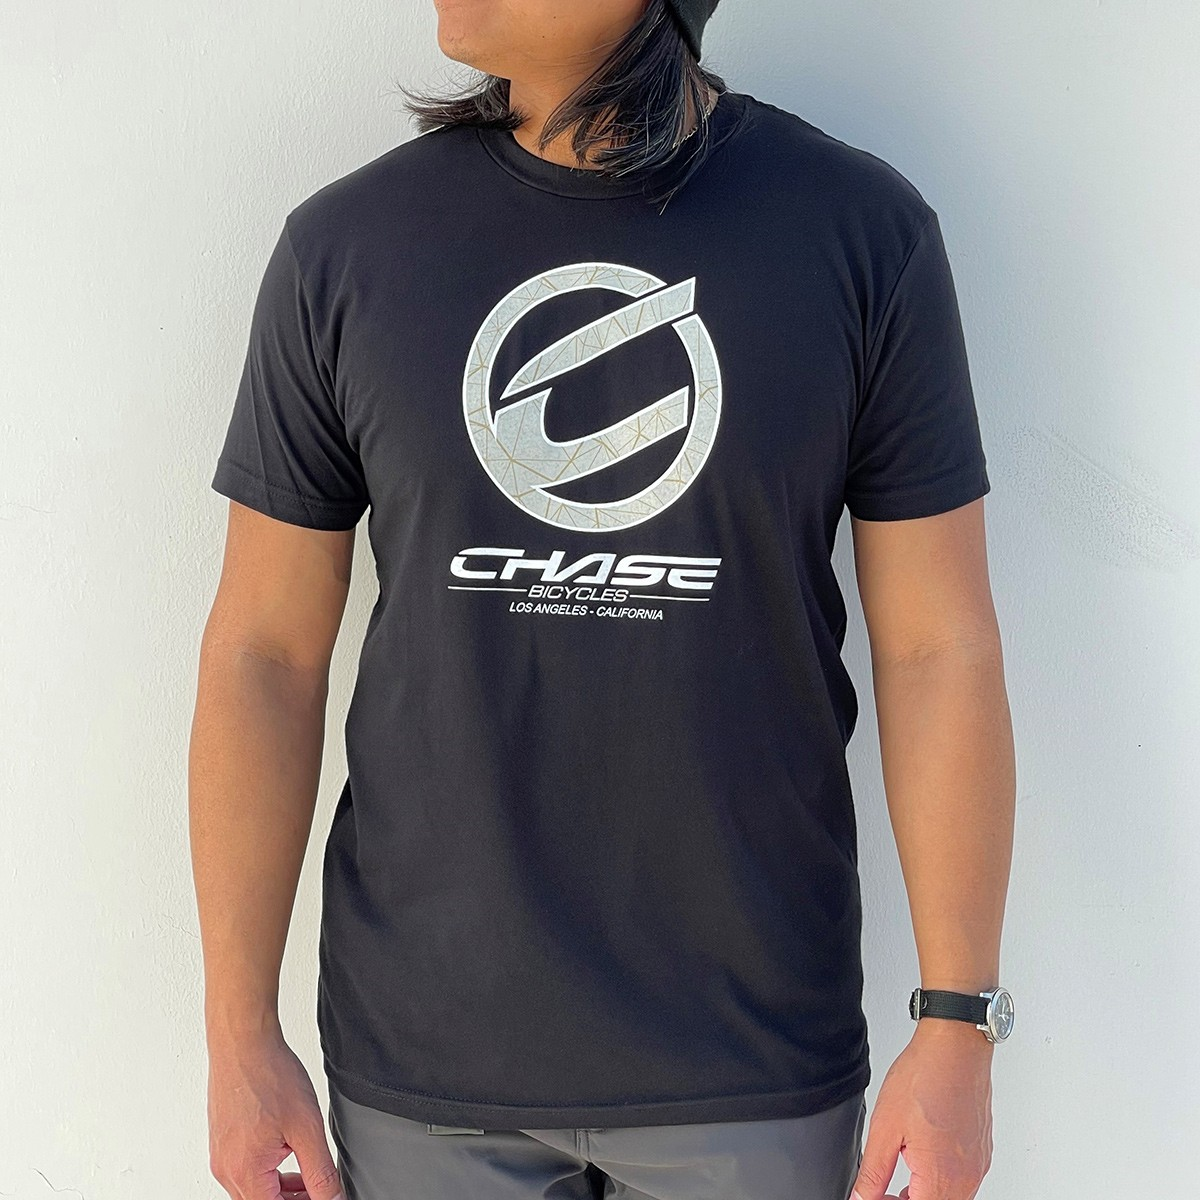 CHASE BICYCLES ROUND ICON BLACK/SAND T-SHIRT